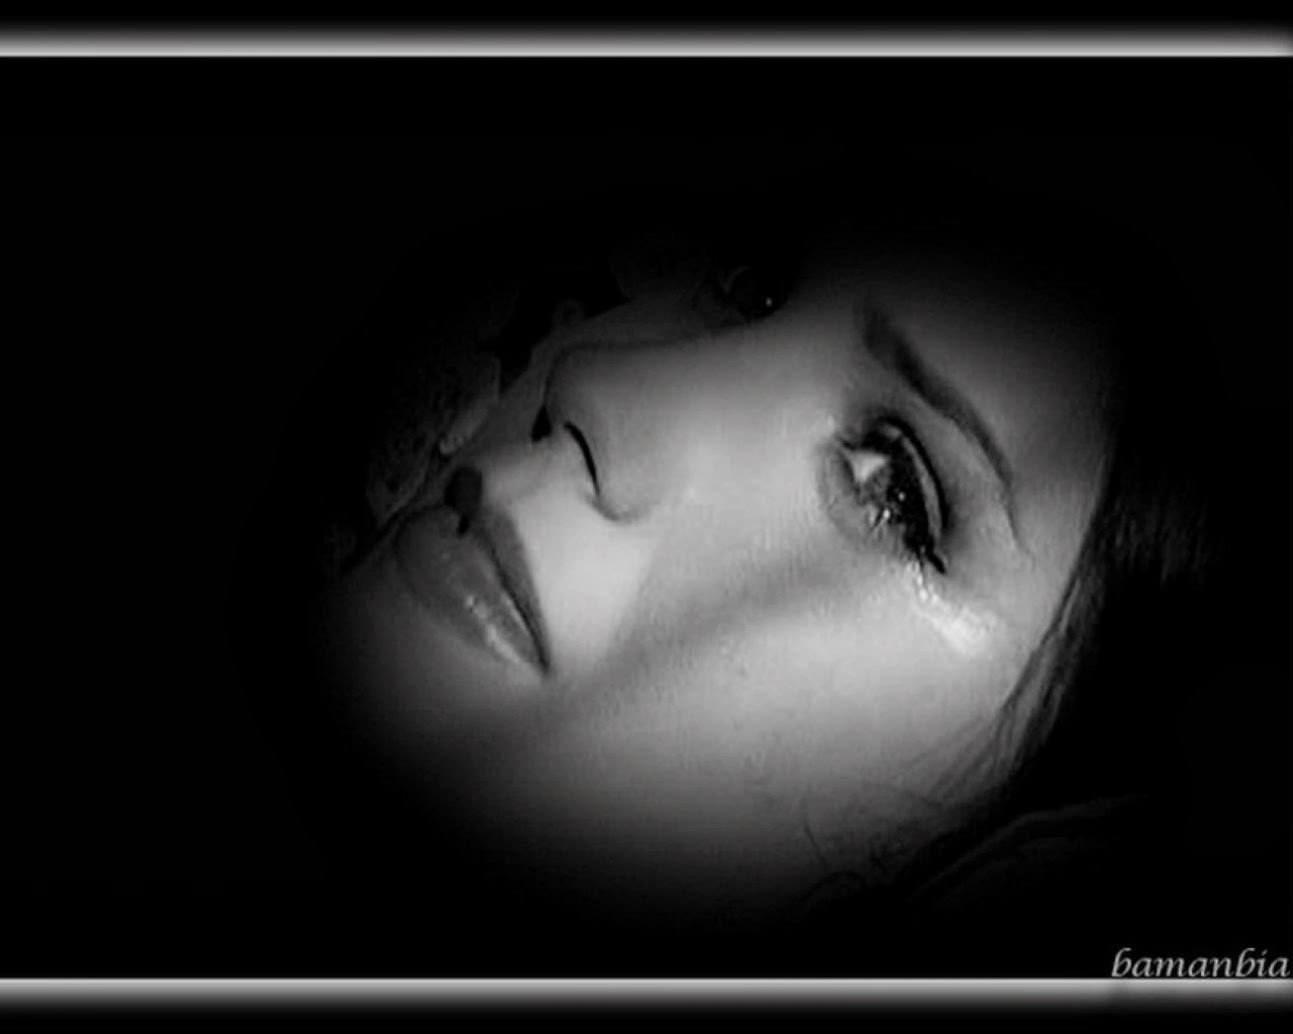 Sad Girl Pictures And Sad Girl Wallpapers   freewallpaperpk wallpaper 1293x1034